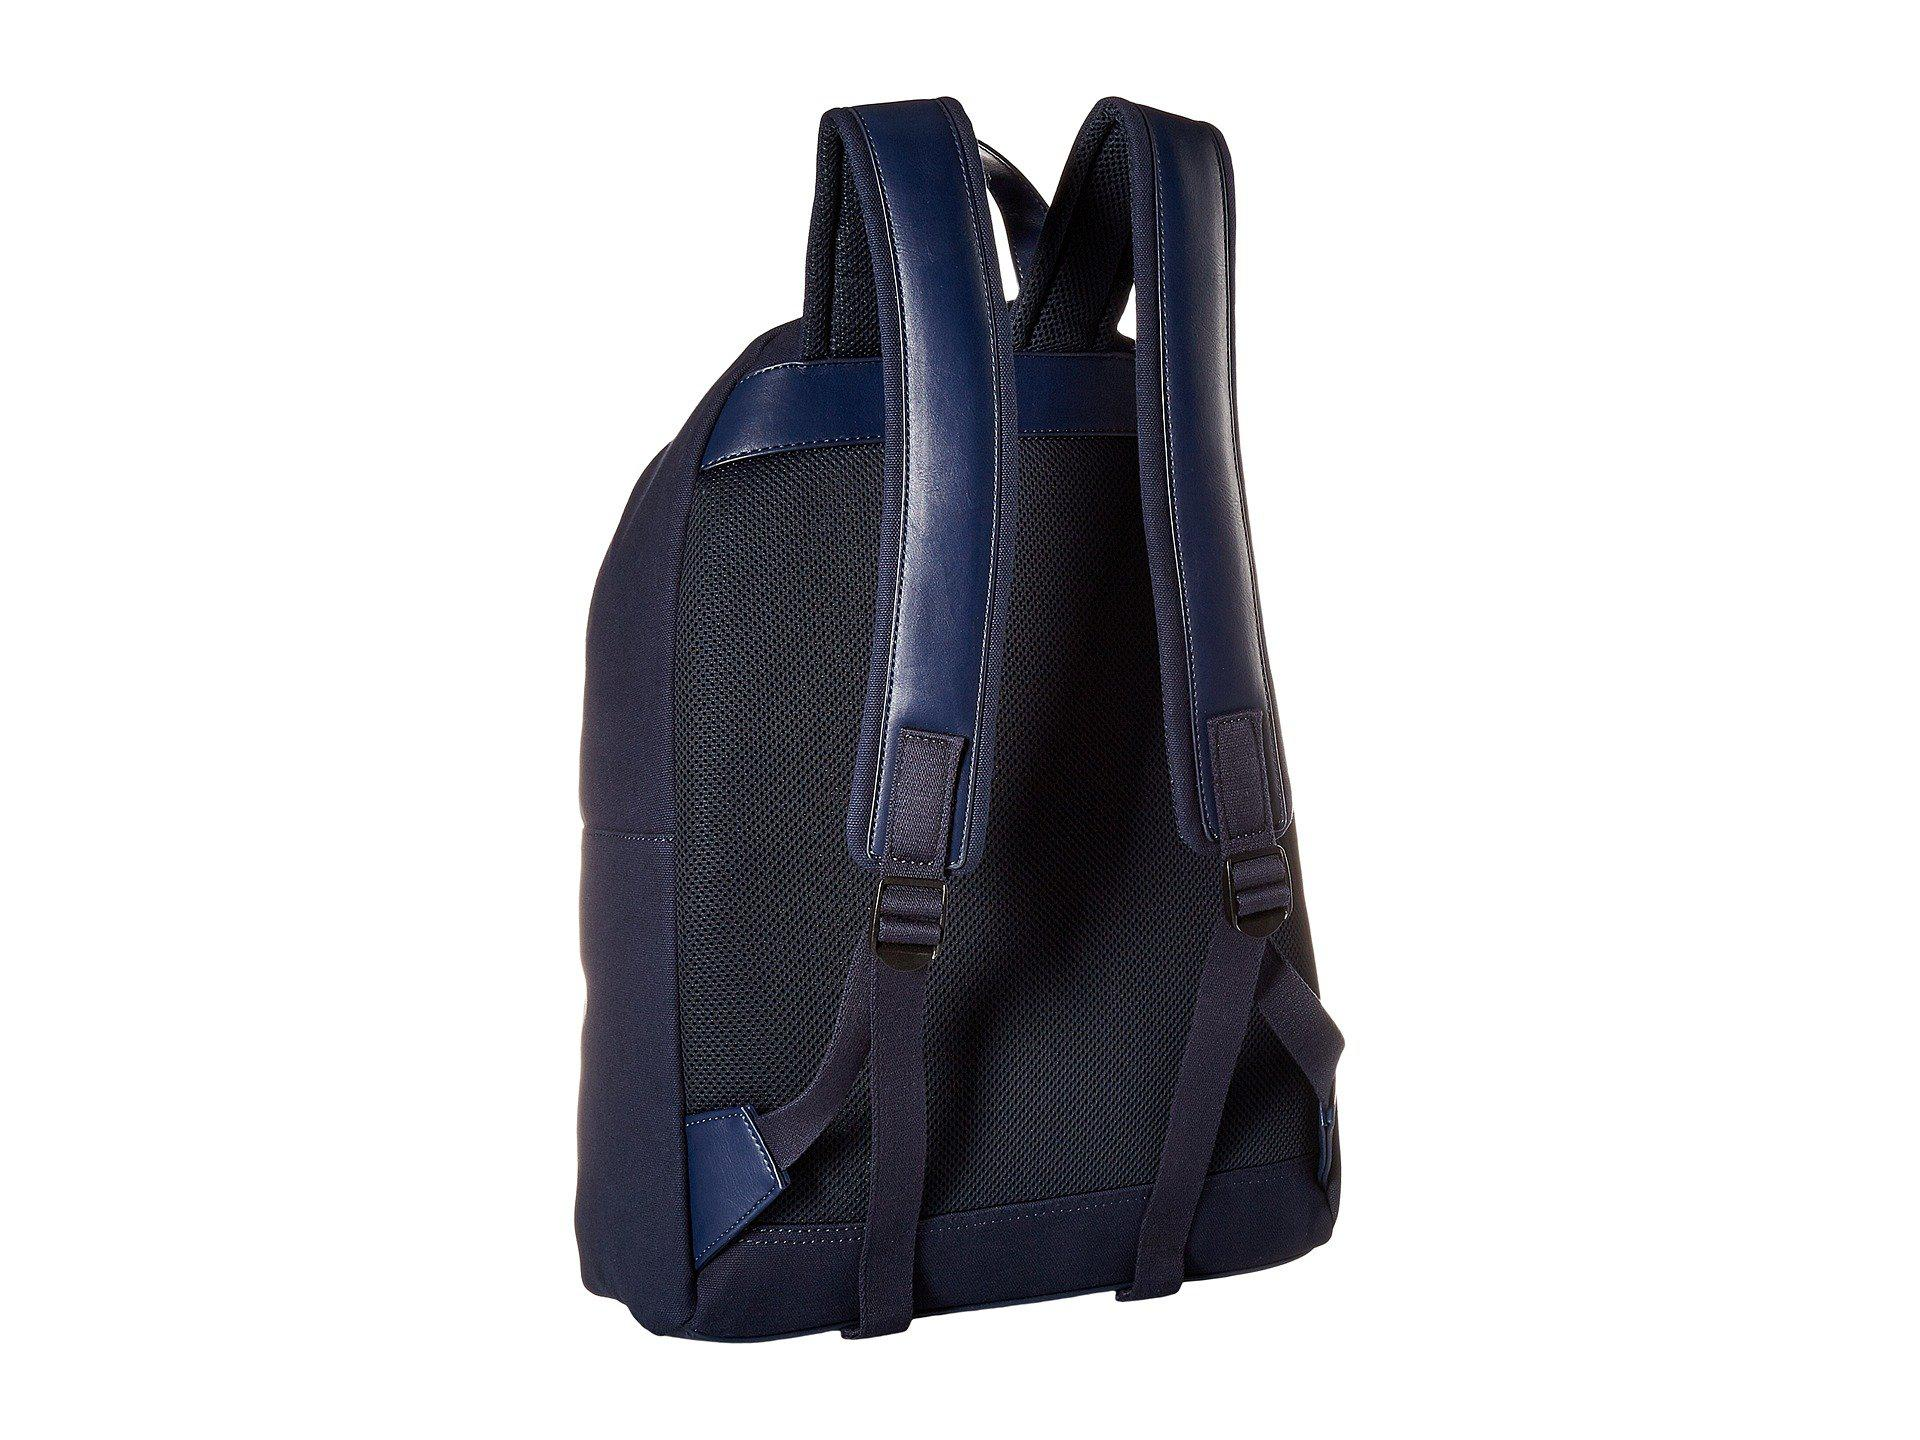 Lyst - Tommy Hilfiger Icon Backpack Canvas in Blue for Men d2f53955f7dcc